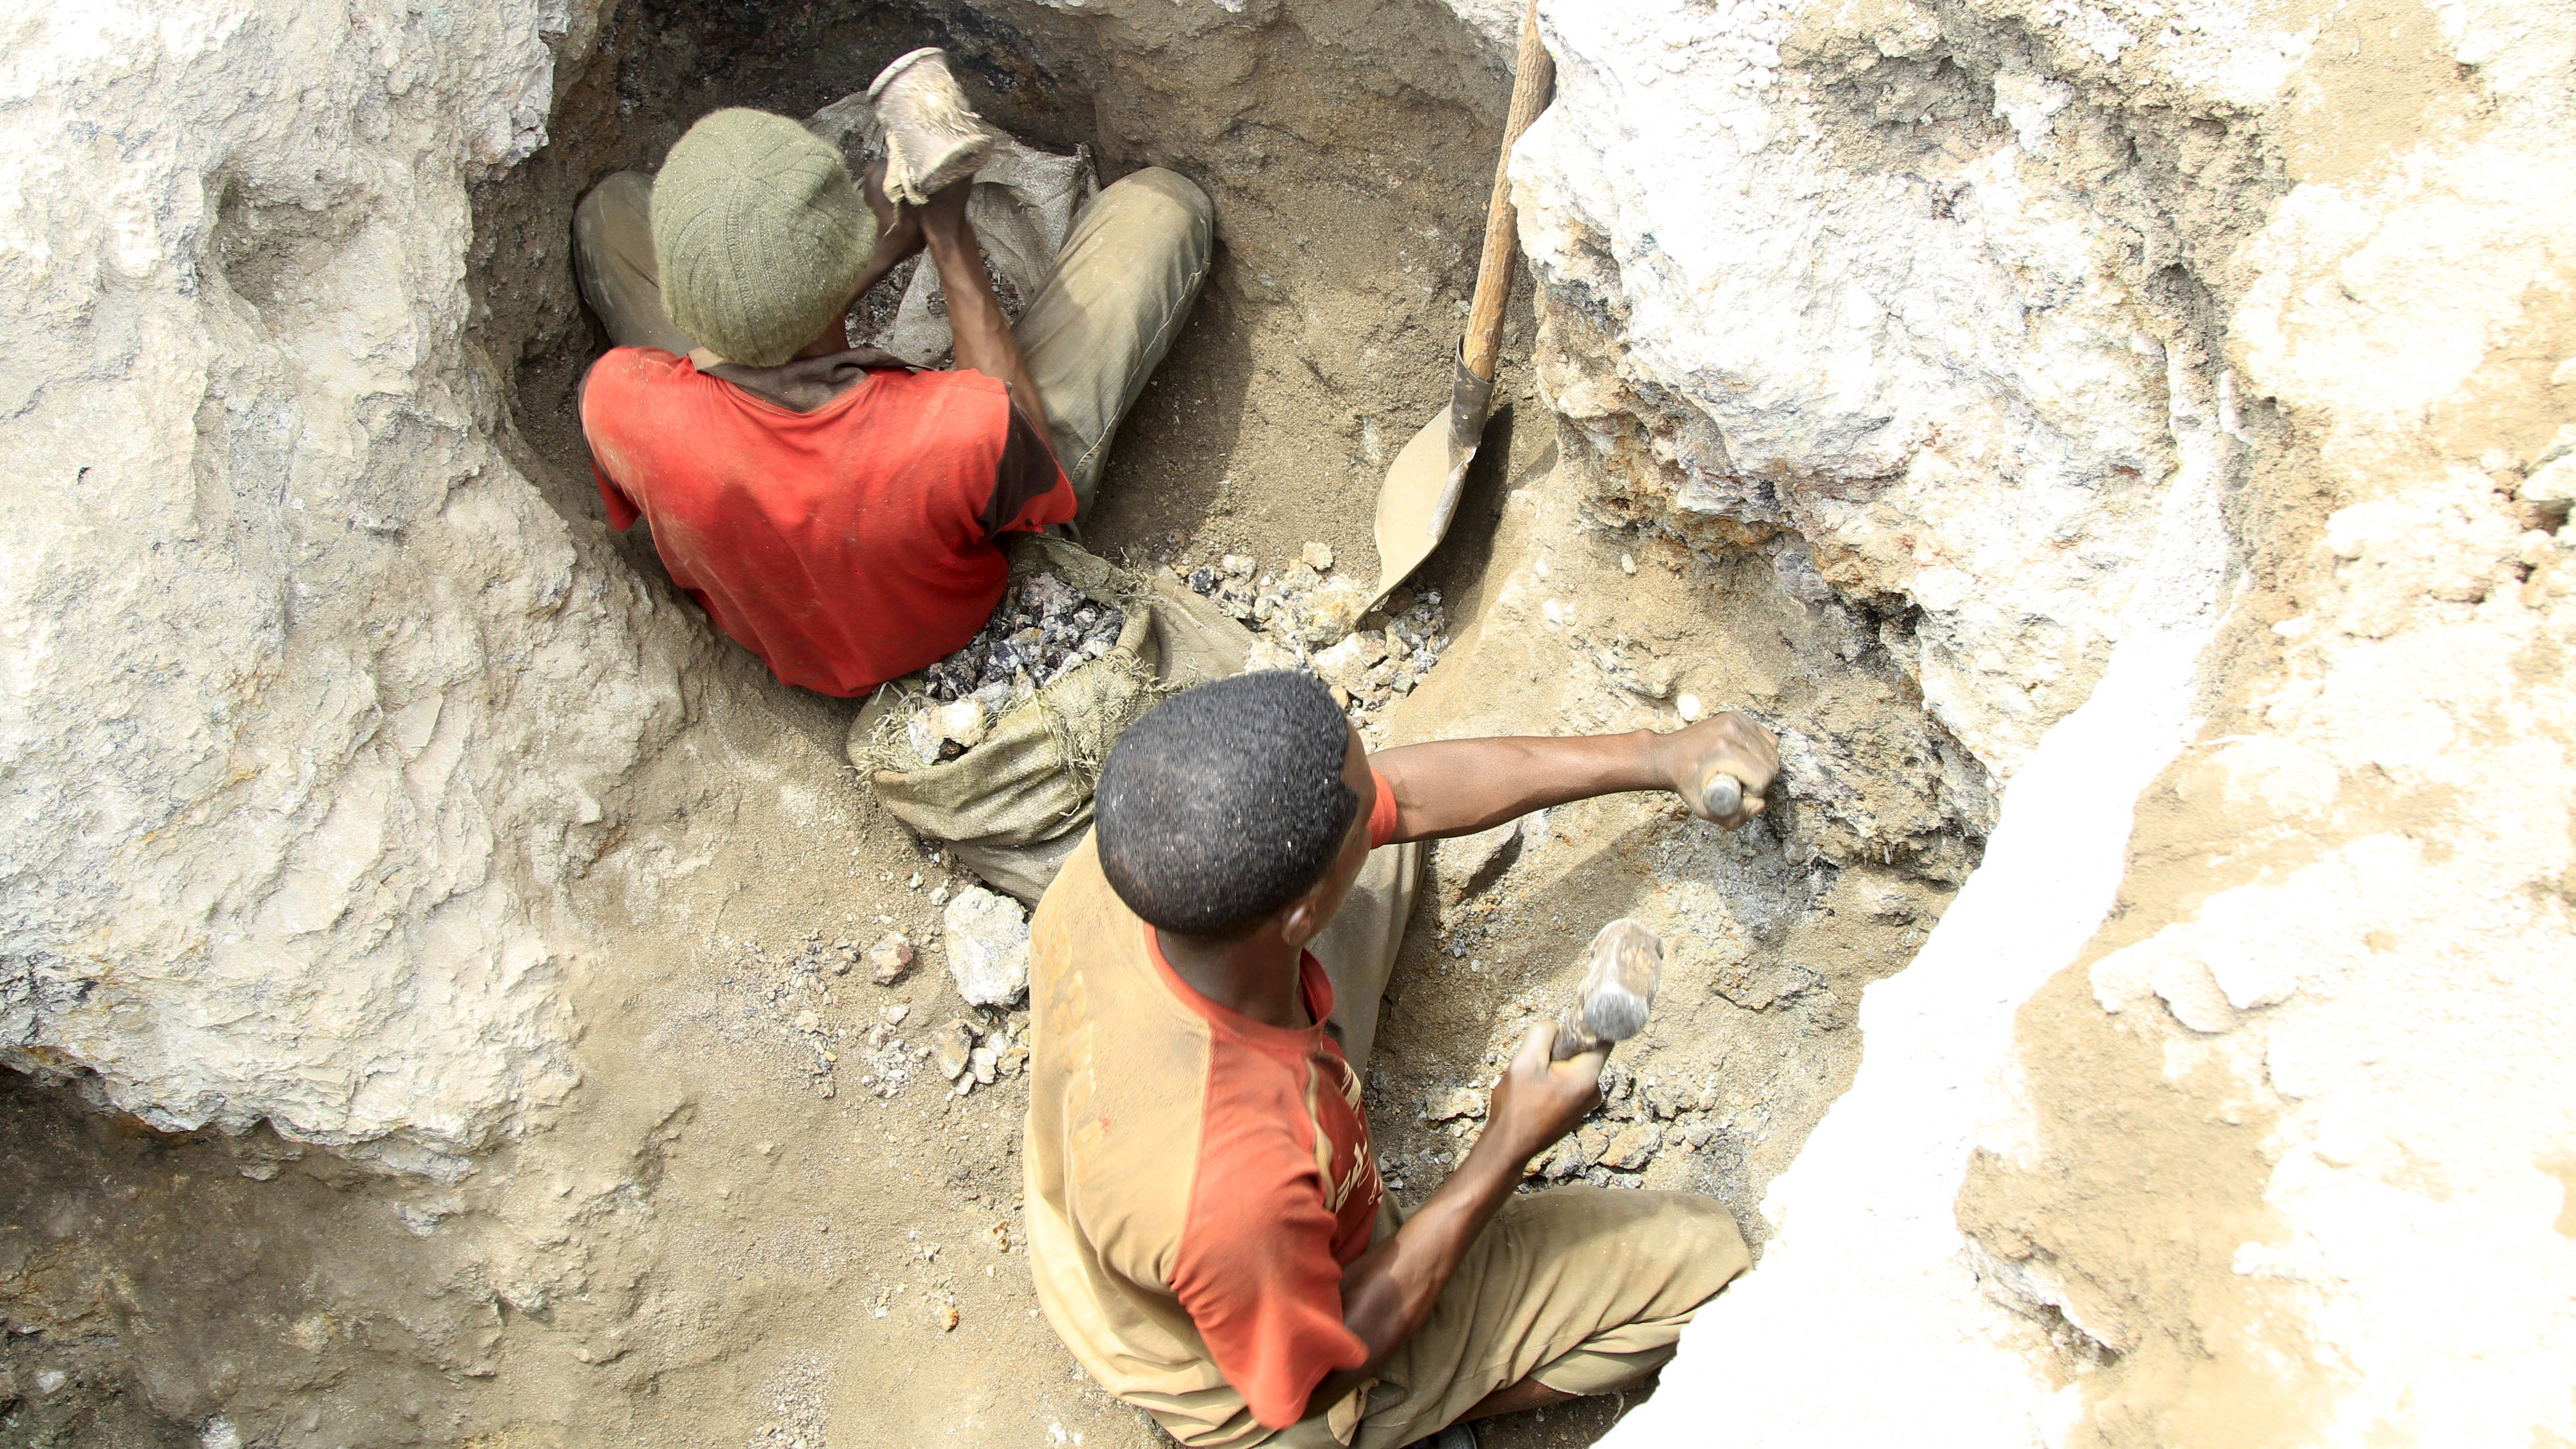 Apple to buy cobalt directly from cobalt miners: Who will benefit in the troubled DR Congo